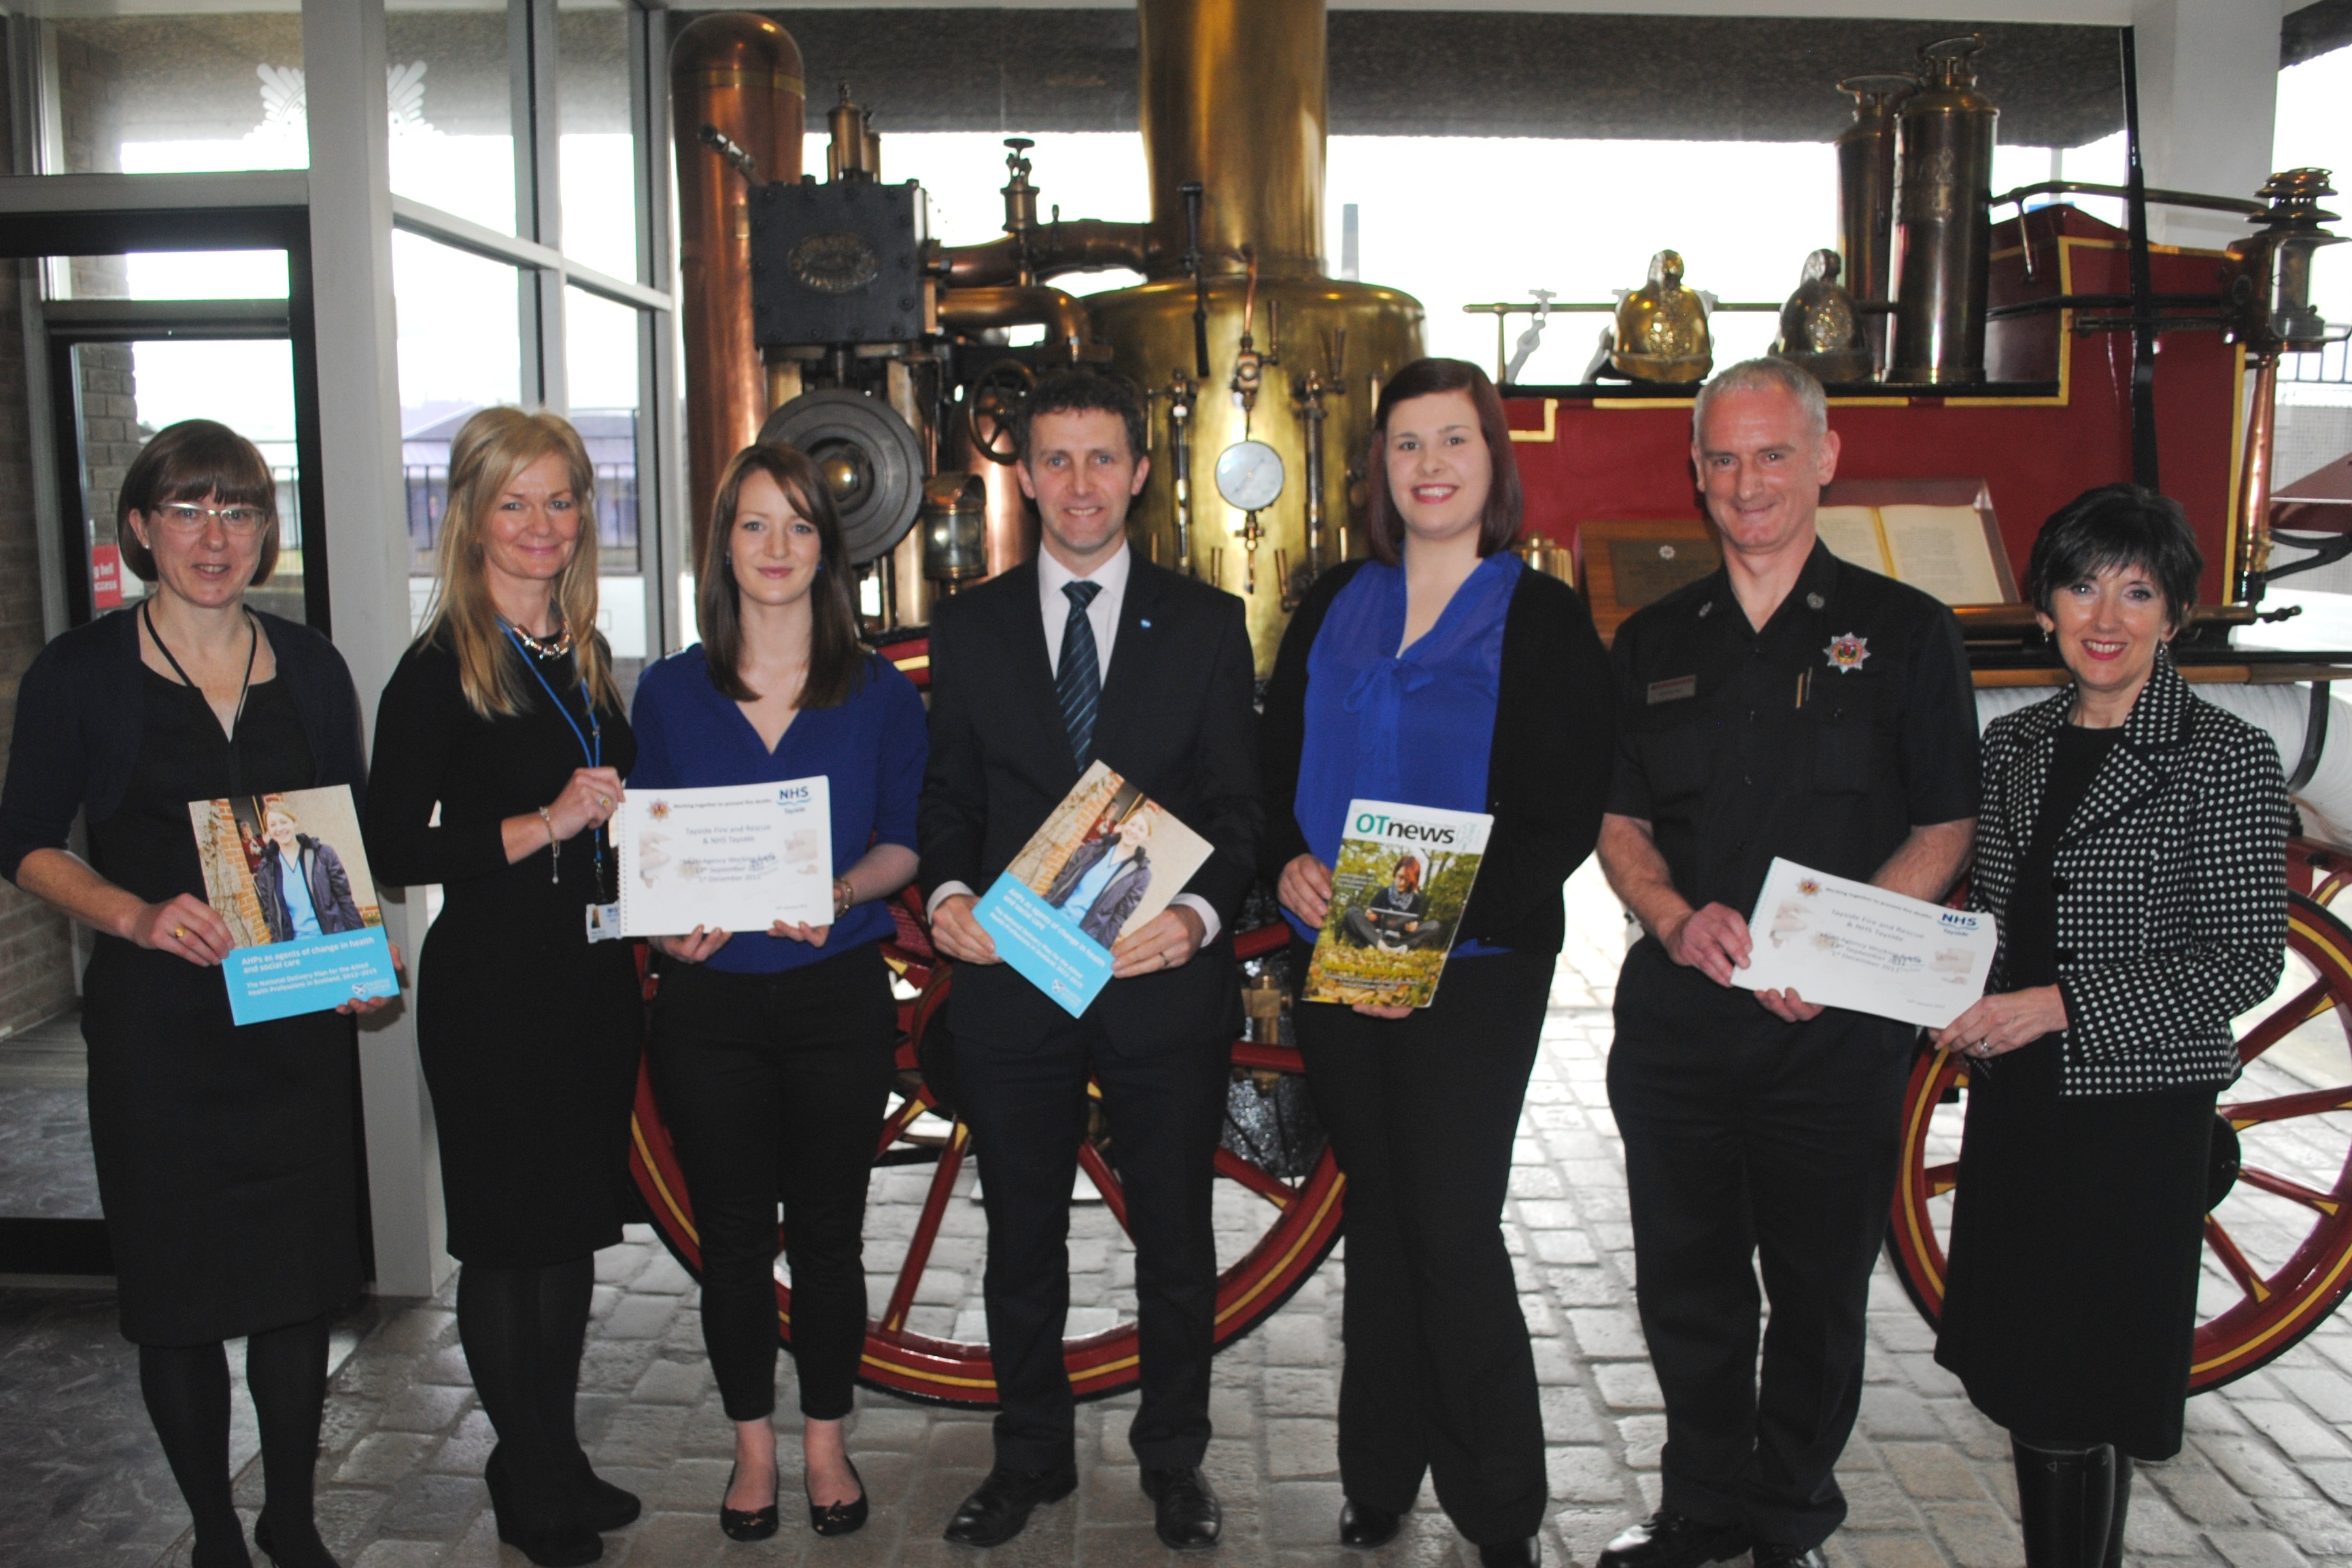 Partnership approach to reducing fire accidents showcased in Dundee